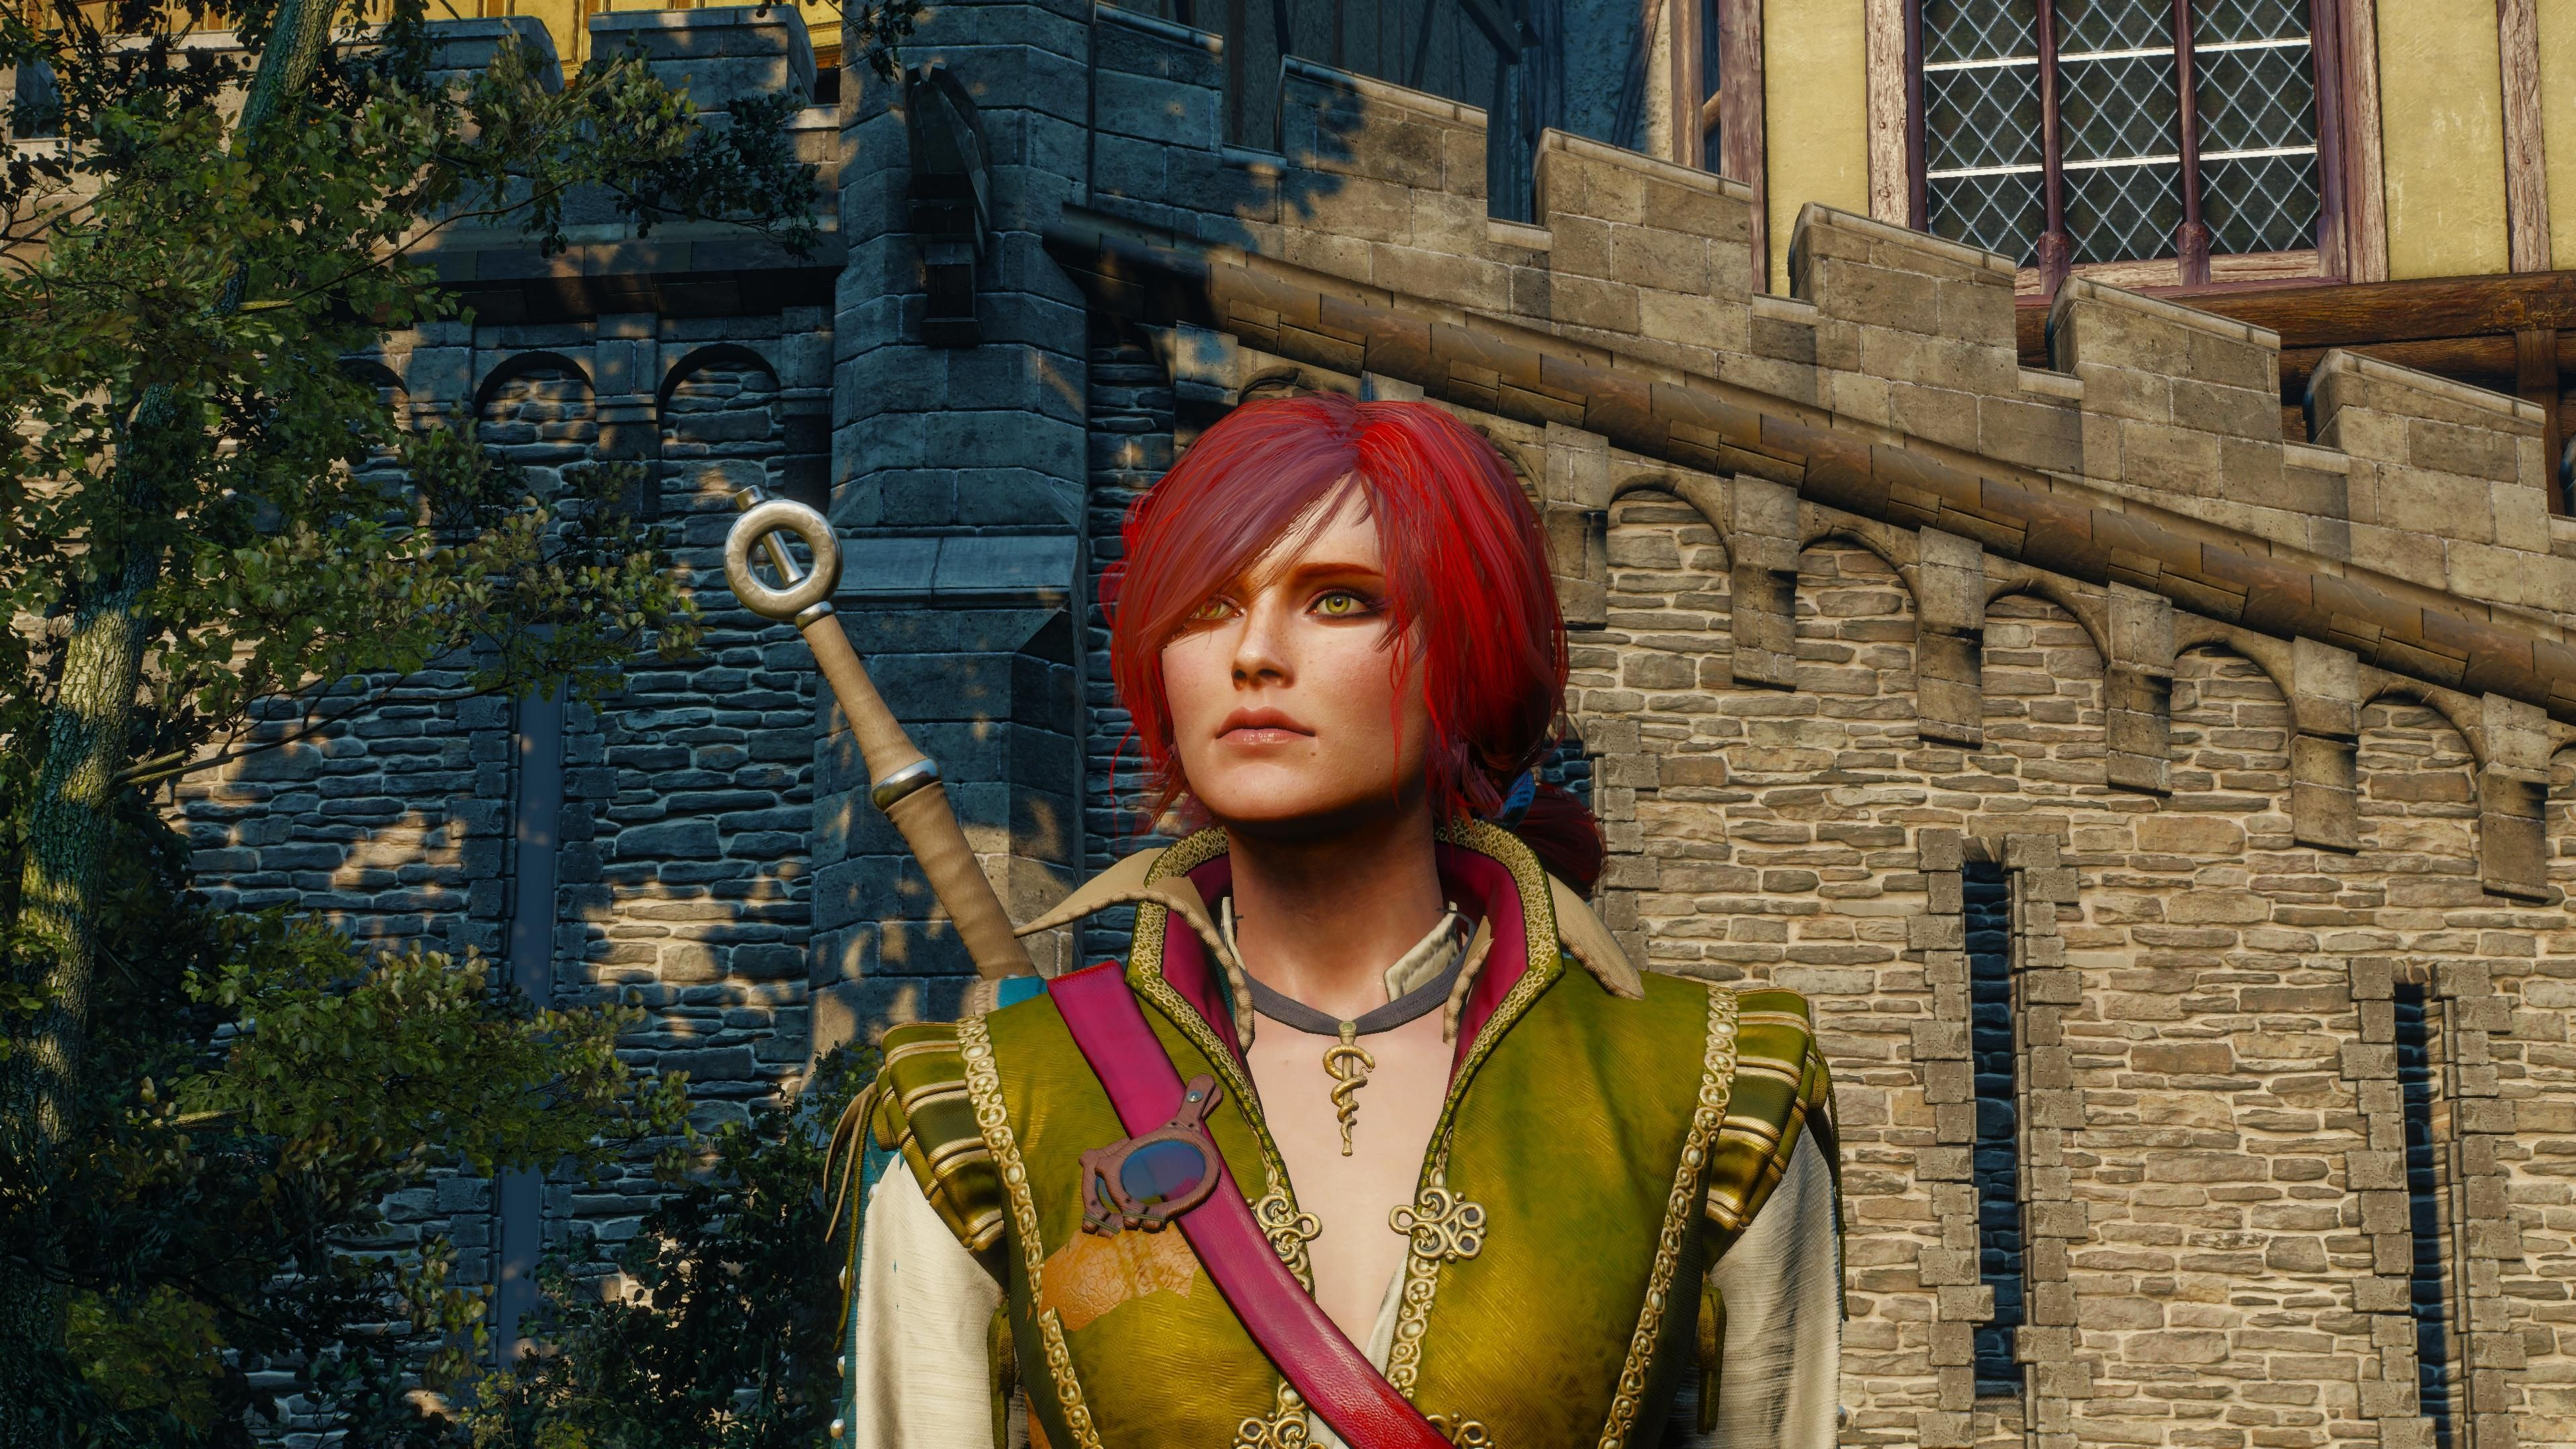 Playing around with console commands I accidentally morphed Shani